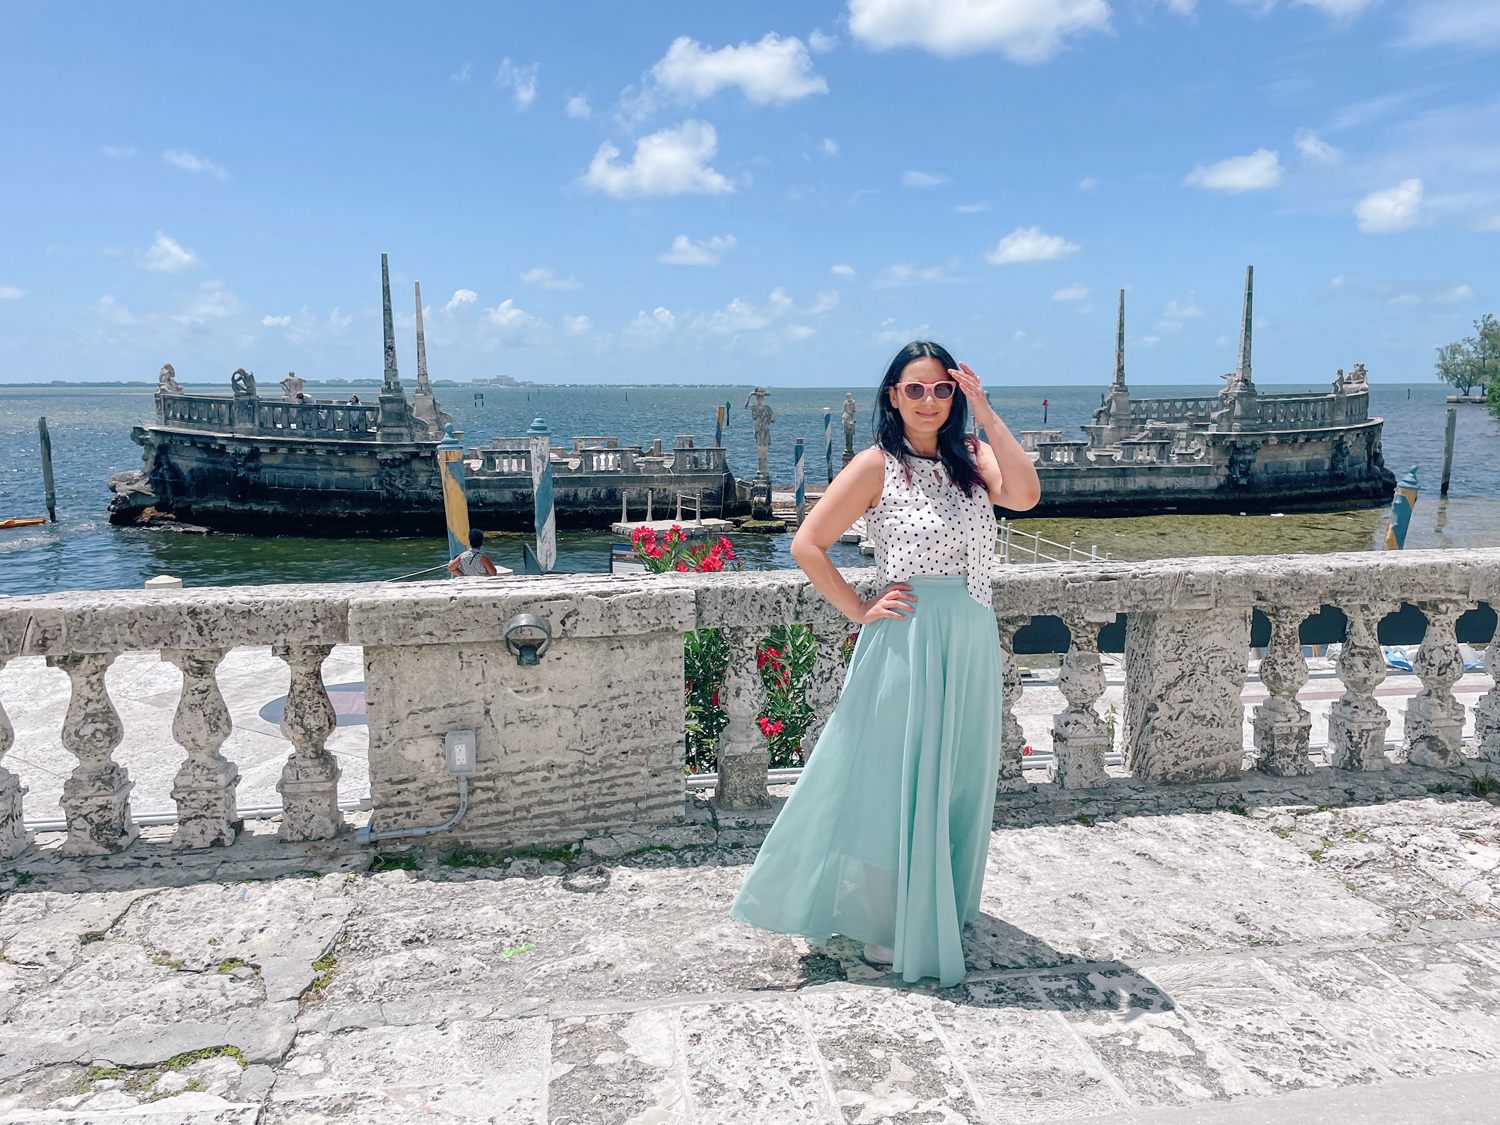 Best Things To Do in Miami: Vizacaya Museum & Gardens the barge